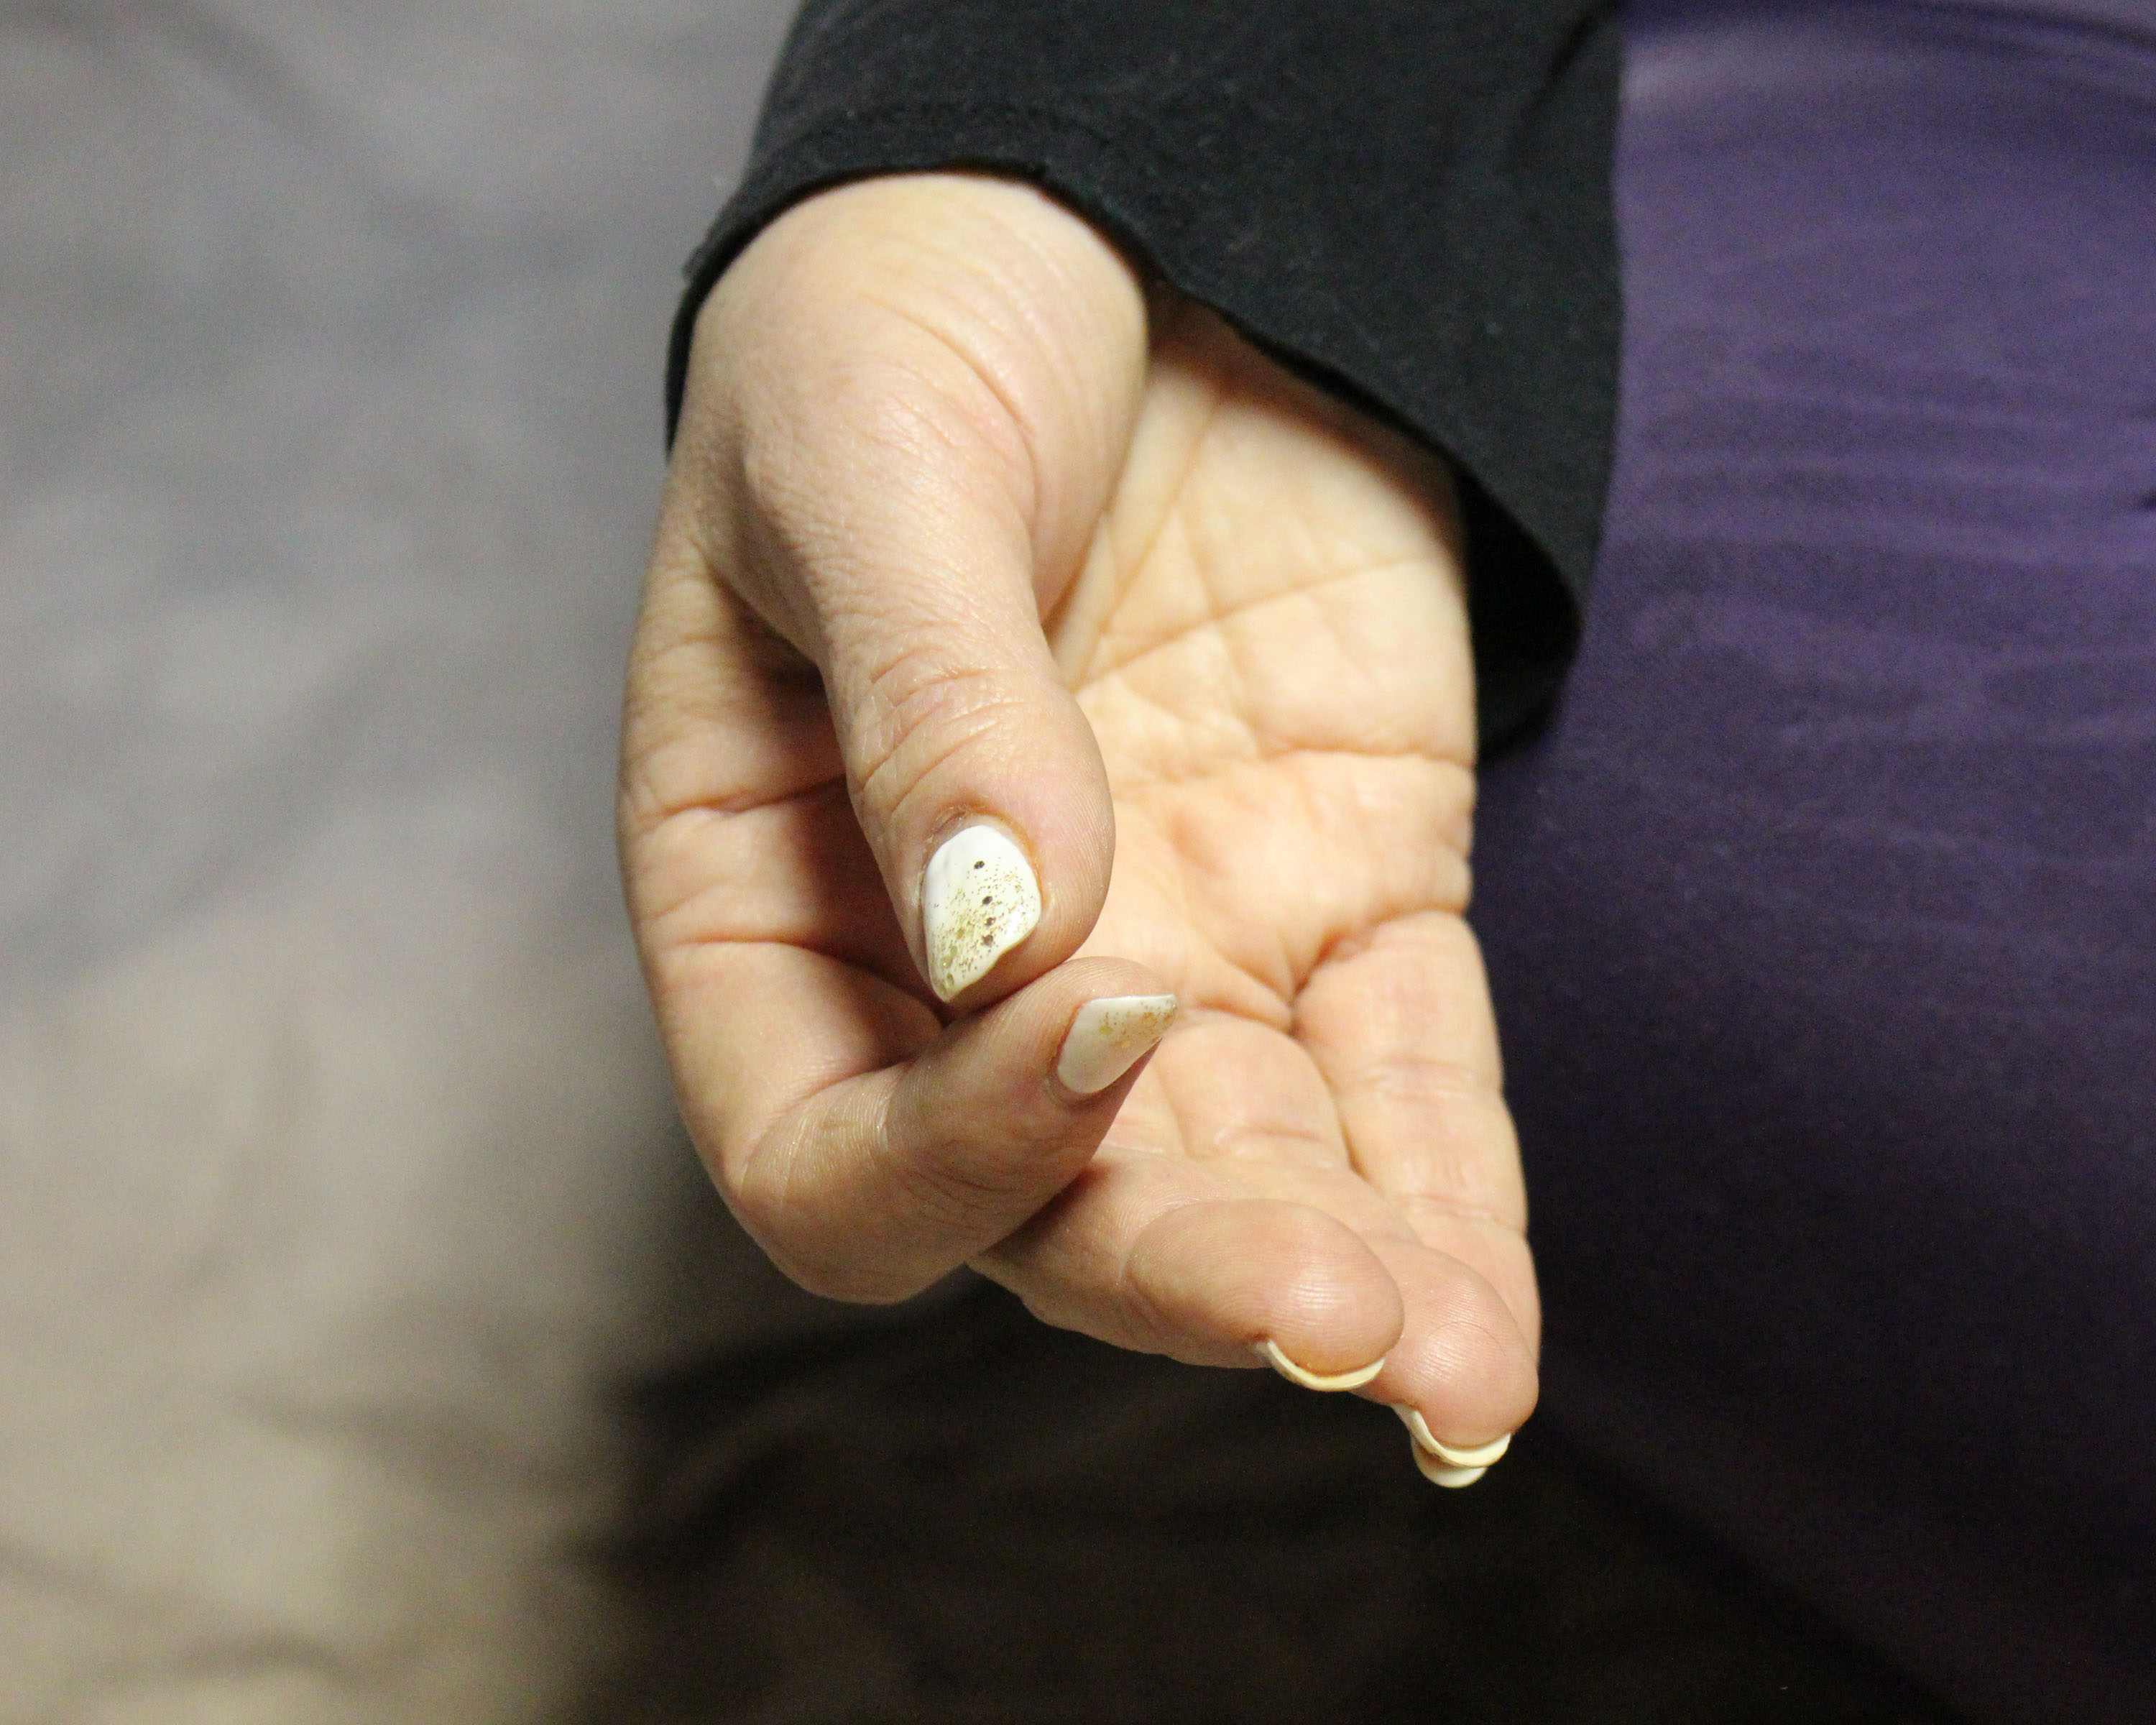 Nicole's hand in a meditation position called Gyan Mudra